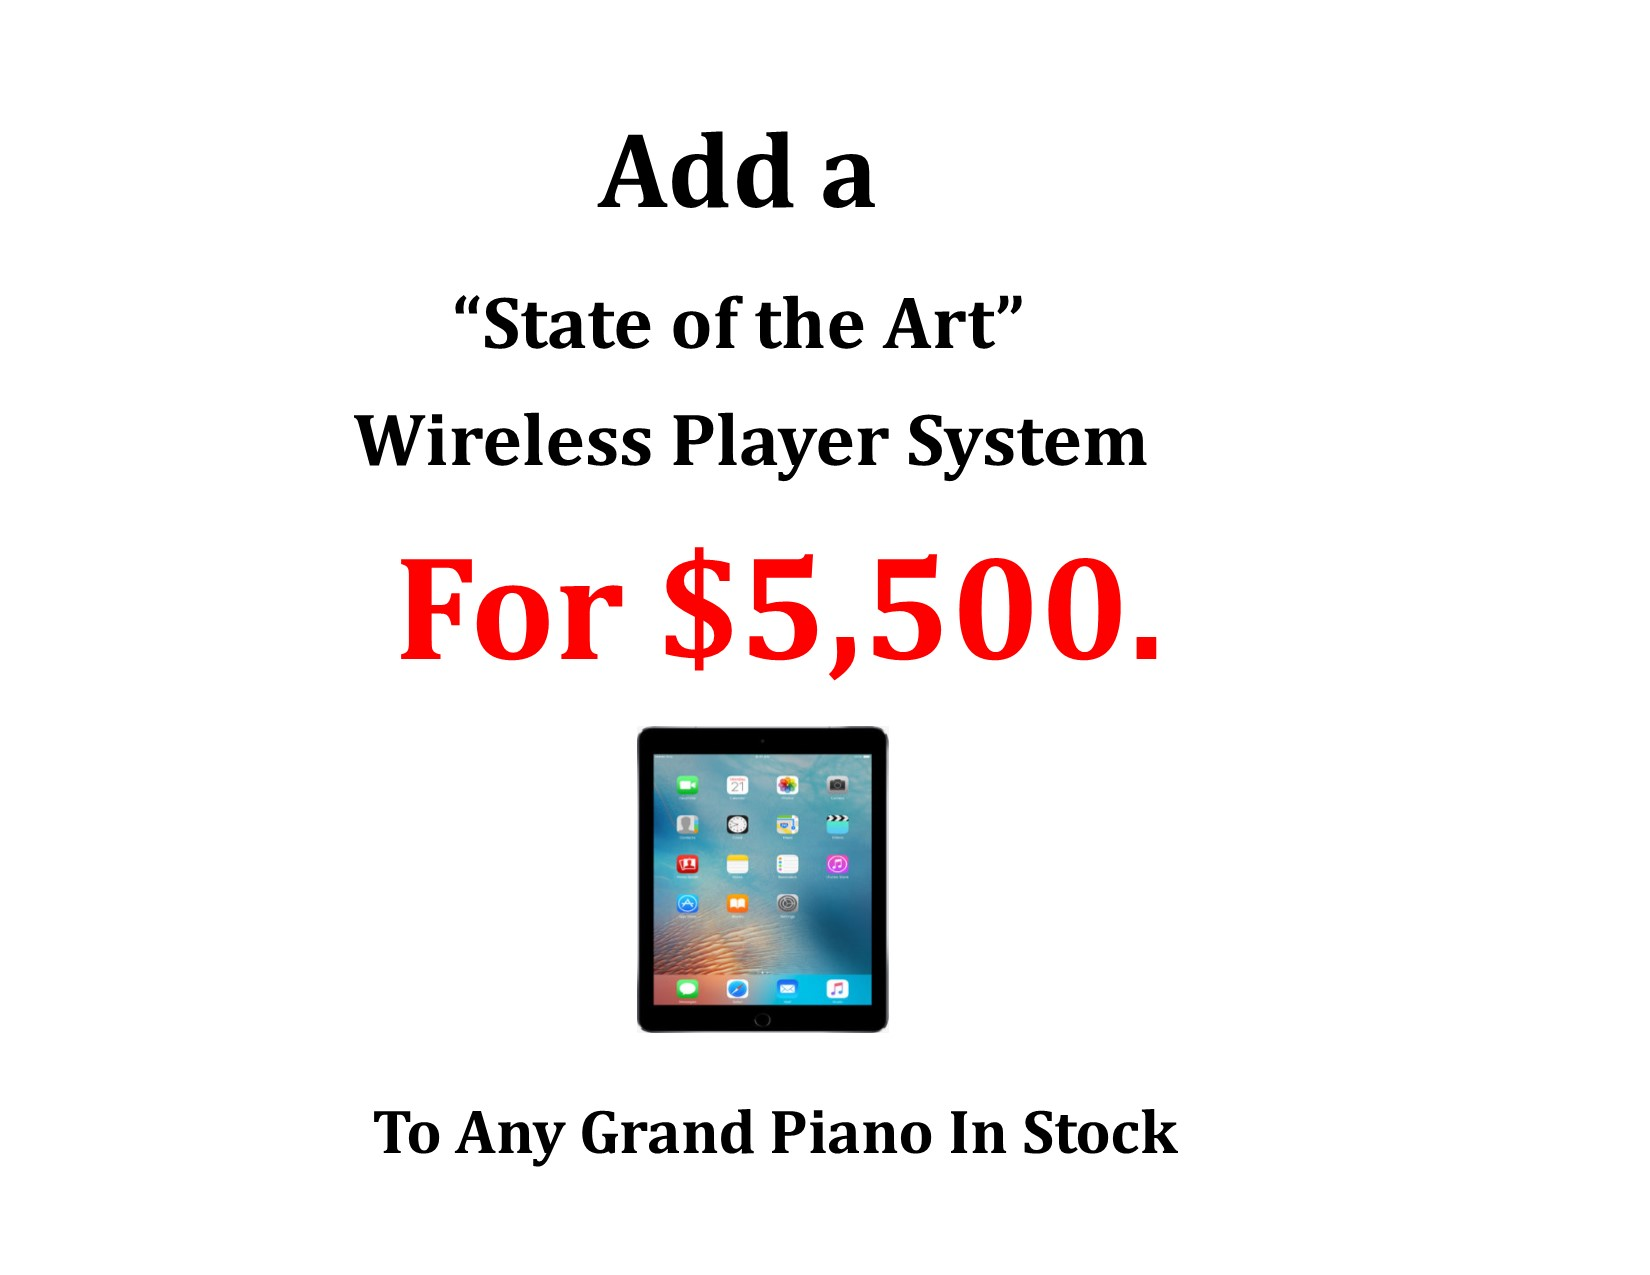 """13899-<br><font color=""""black""""><b> Add A """"State of the Art"""" Wireless Player for $5,500. to Any Grand Piano In Stock!</b></font>"""